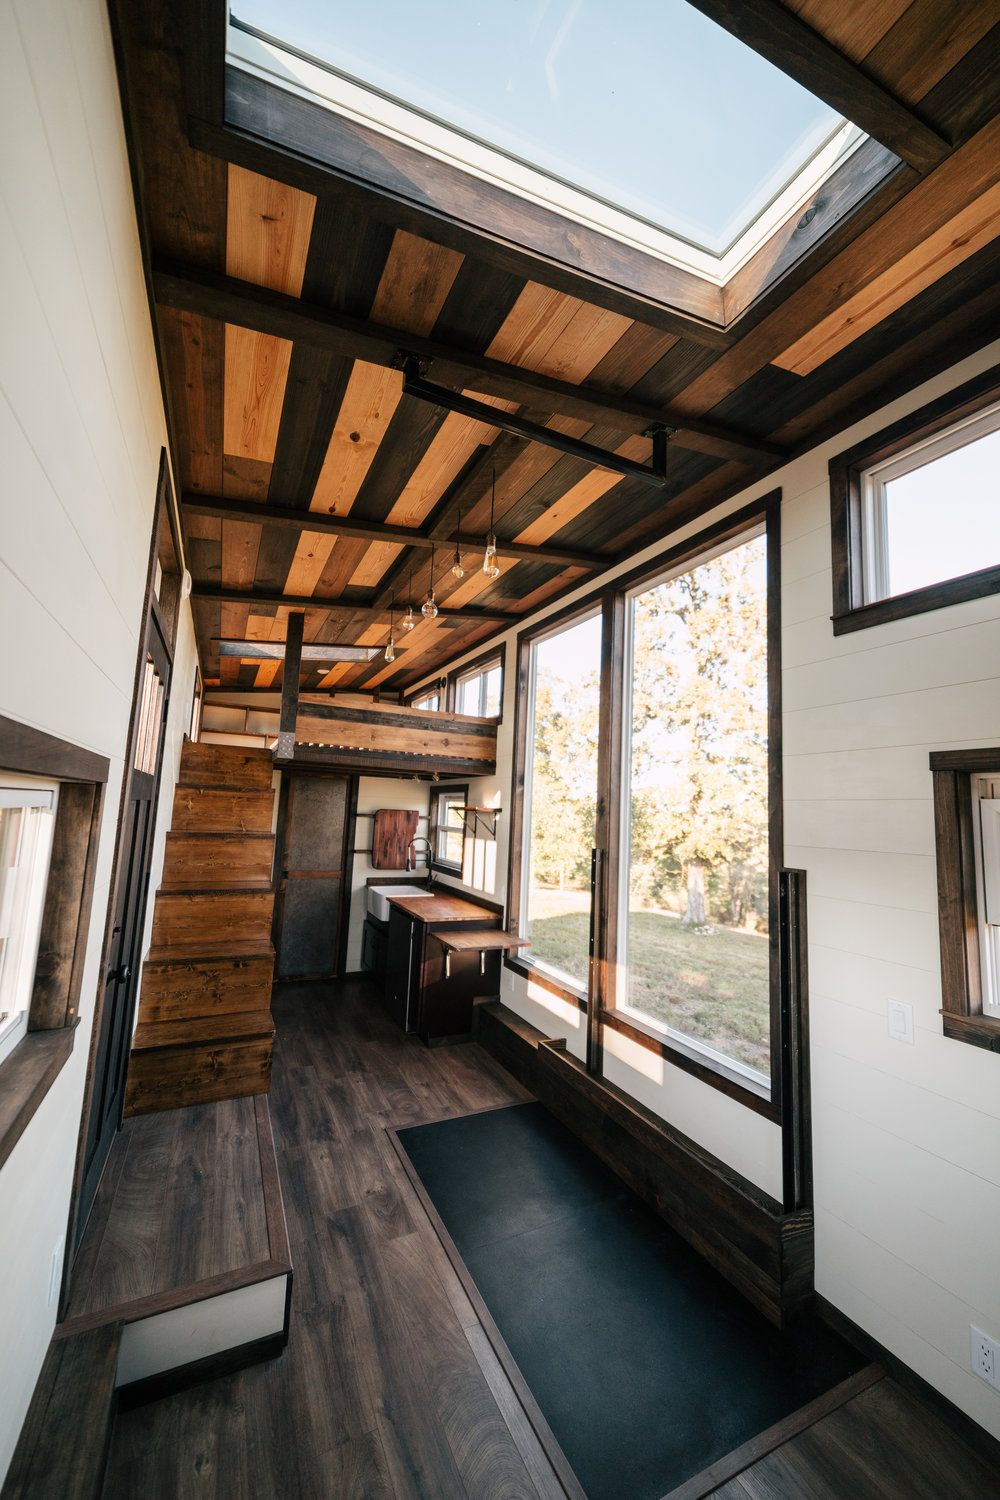 The Silhouette 26ft Tiny House On Wheels With Large Windows And A Built In Gym Tiny House On Wheels Tiny House House On Wheels